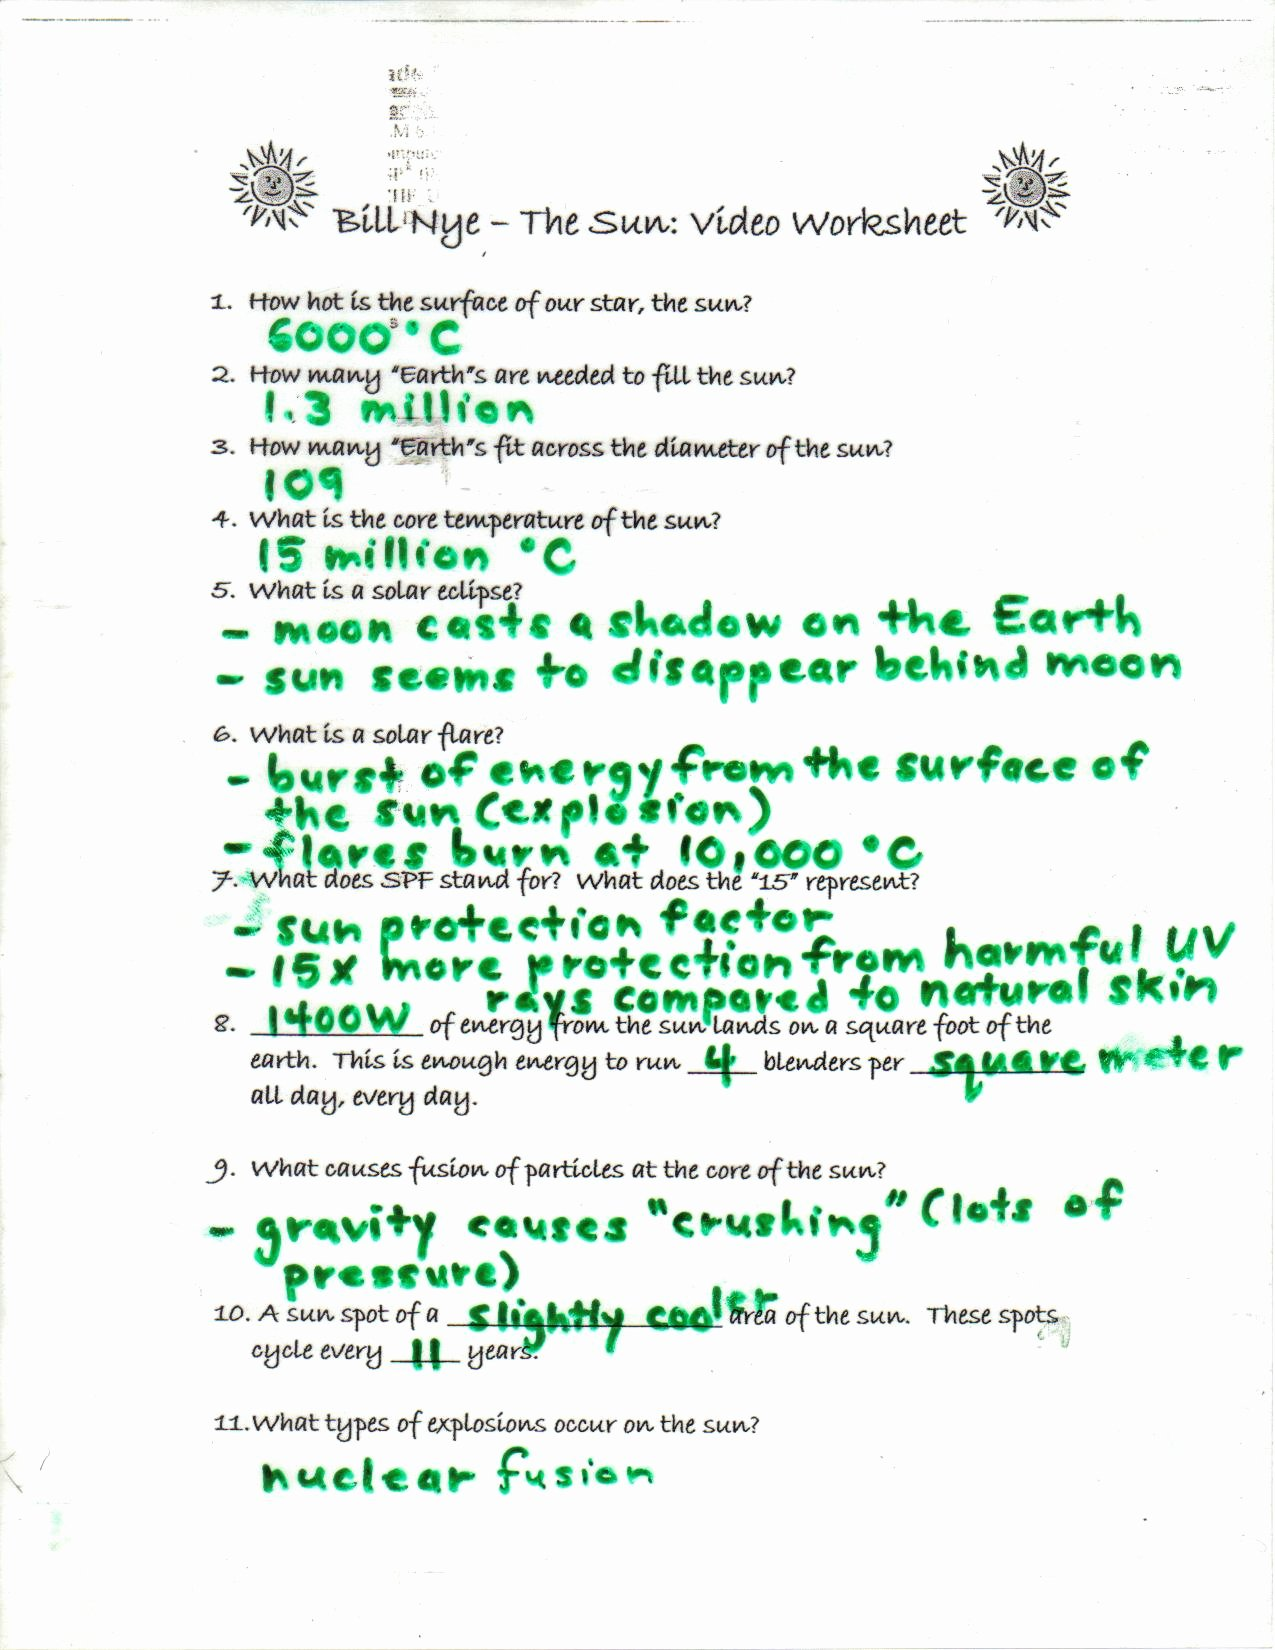 Bill Nye Motion Worksheet Inspirational Bill Nye the Science Guy Earths Seasons Video Worksheet